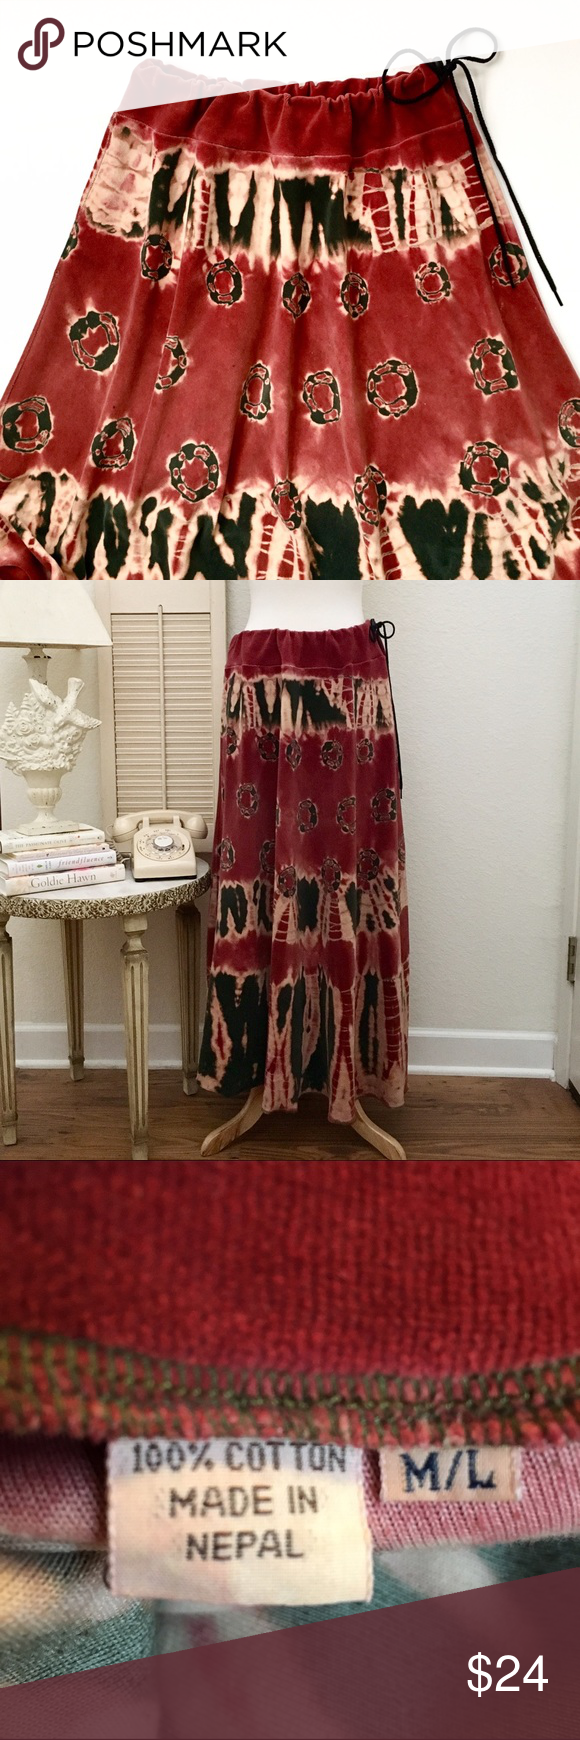 """Nepal Maxi Skirt, Bohemian Tie Dyed Velour❤️ 100% cotton. Adjustable drawstring. Velour  fabric has natural stretch. Colors soft dusty Rosy red, Forest/moss green, cream. Waist: 20""""  across measured flat, wide sweat pant style waistband. hip: approximately 26 inches across measured flat. Length: front, approximately 37 inches in length, back: approx 40 length... The length is quirky, varies, those kooky bohemians😊. Hemline is serged. Beautiful dyed print. This item is used and in good hippy…"""